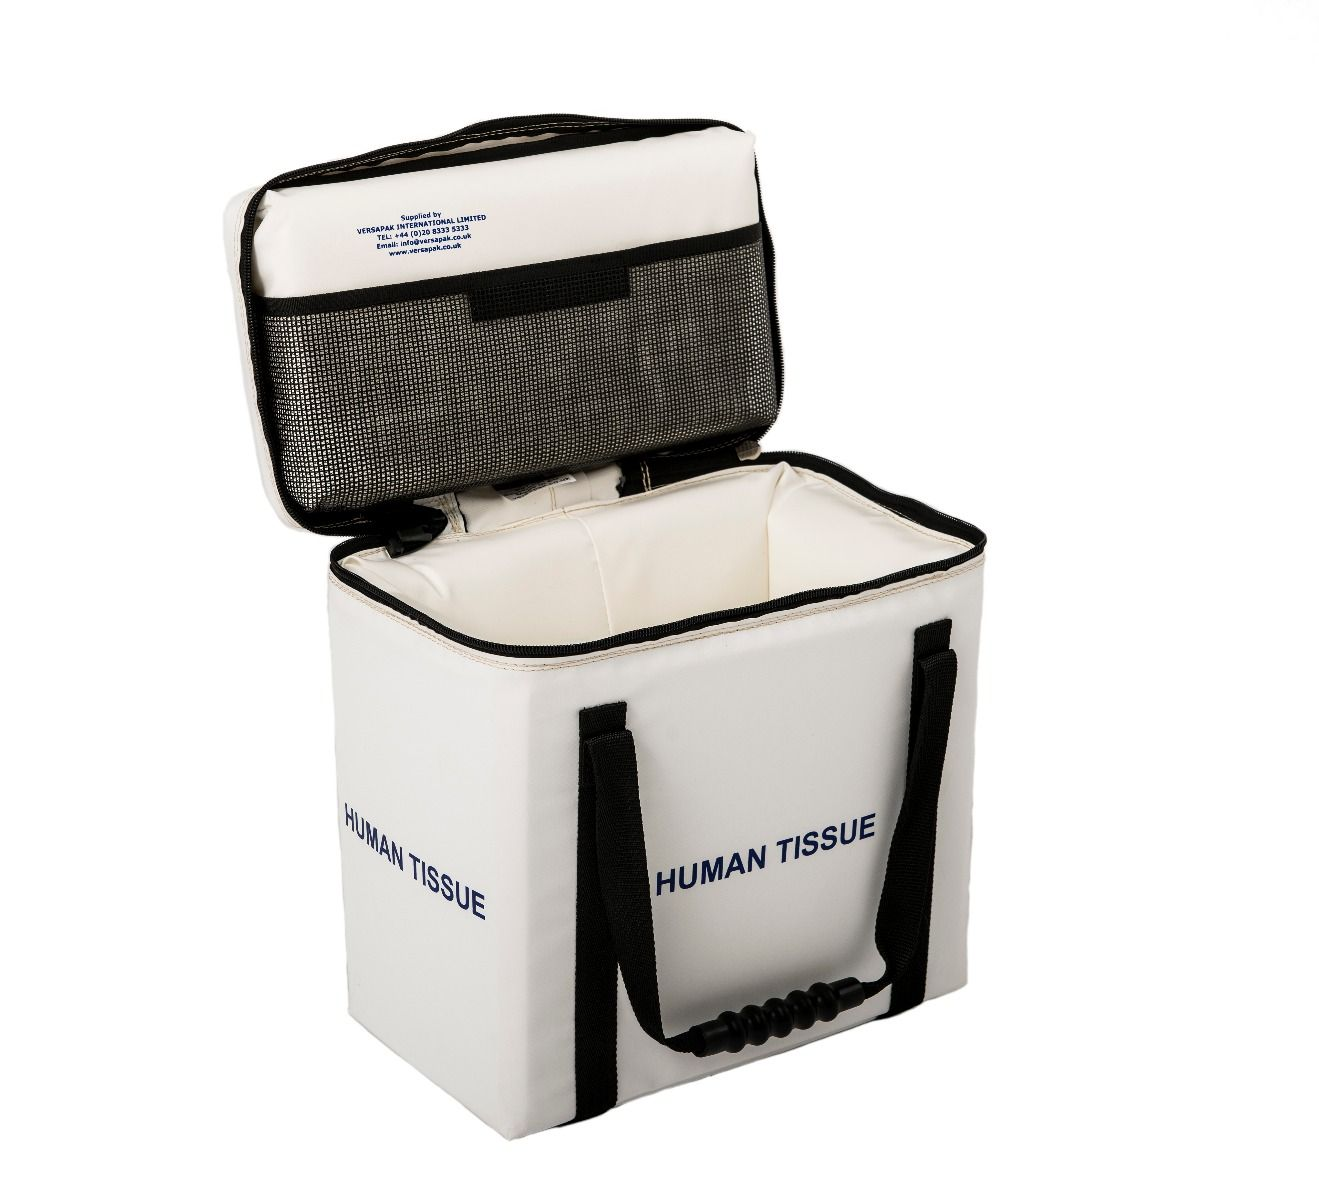 Small Transport Medical Carrier - Human Tissue